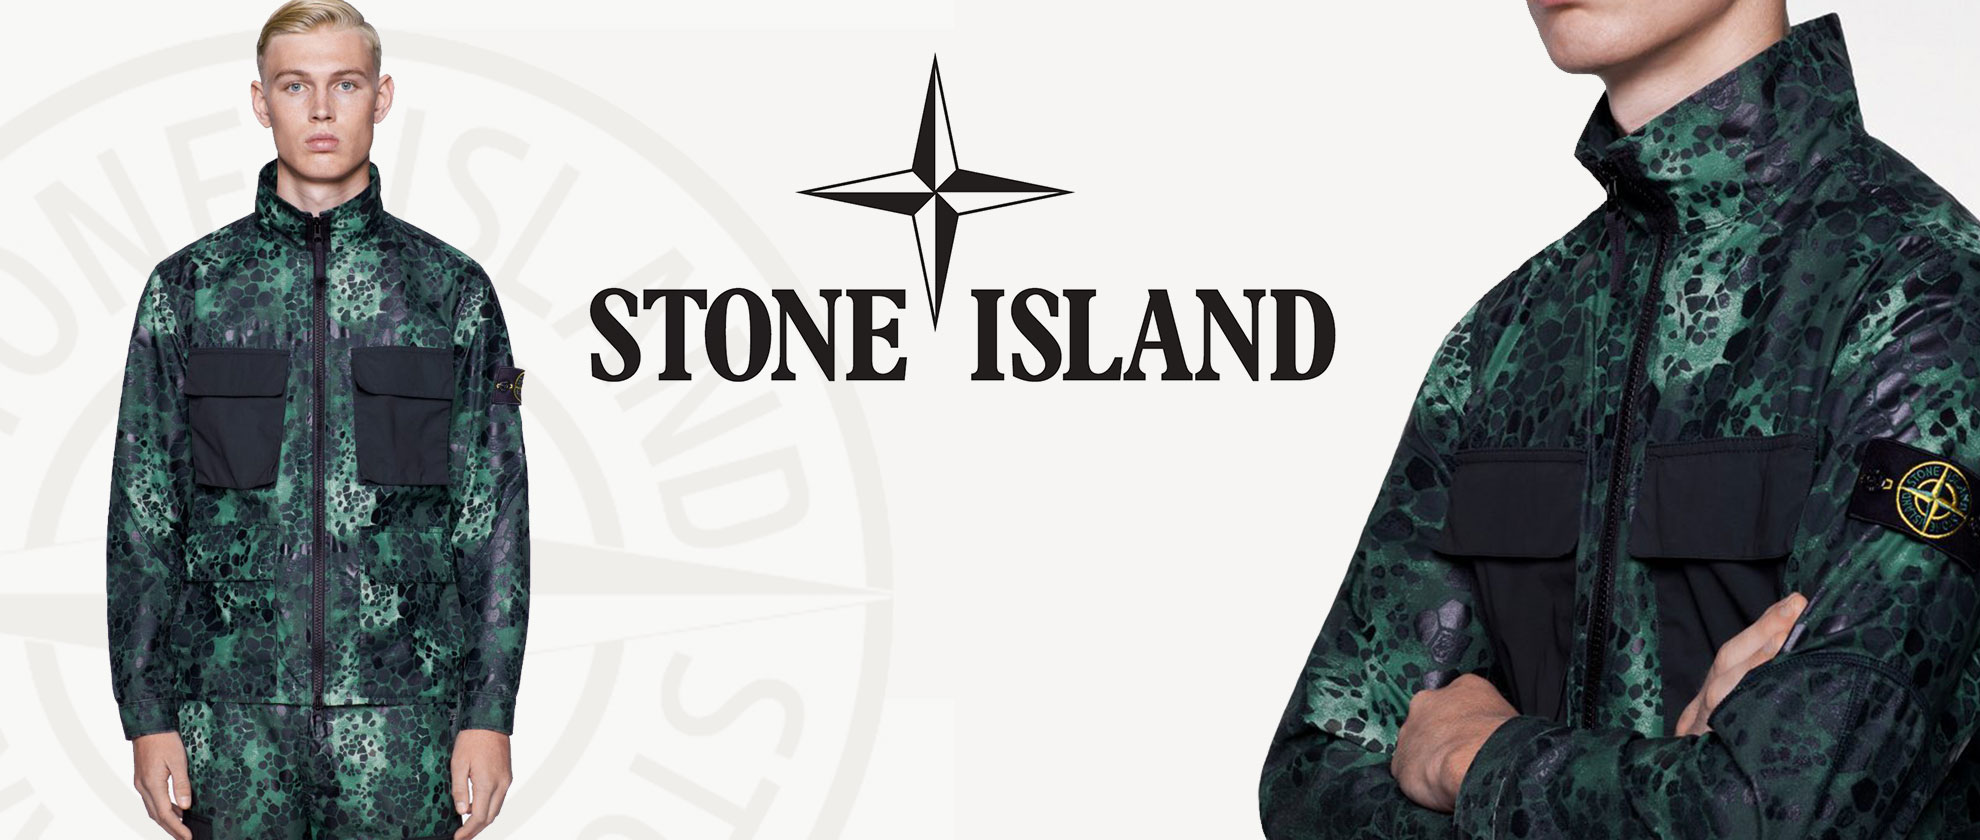 Stone Island Alligator Camo Collection Launch – 22nd March 2018